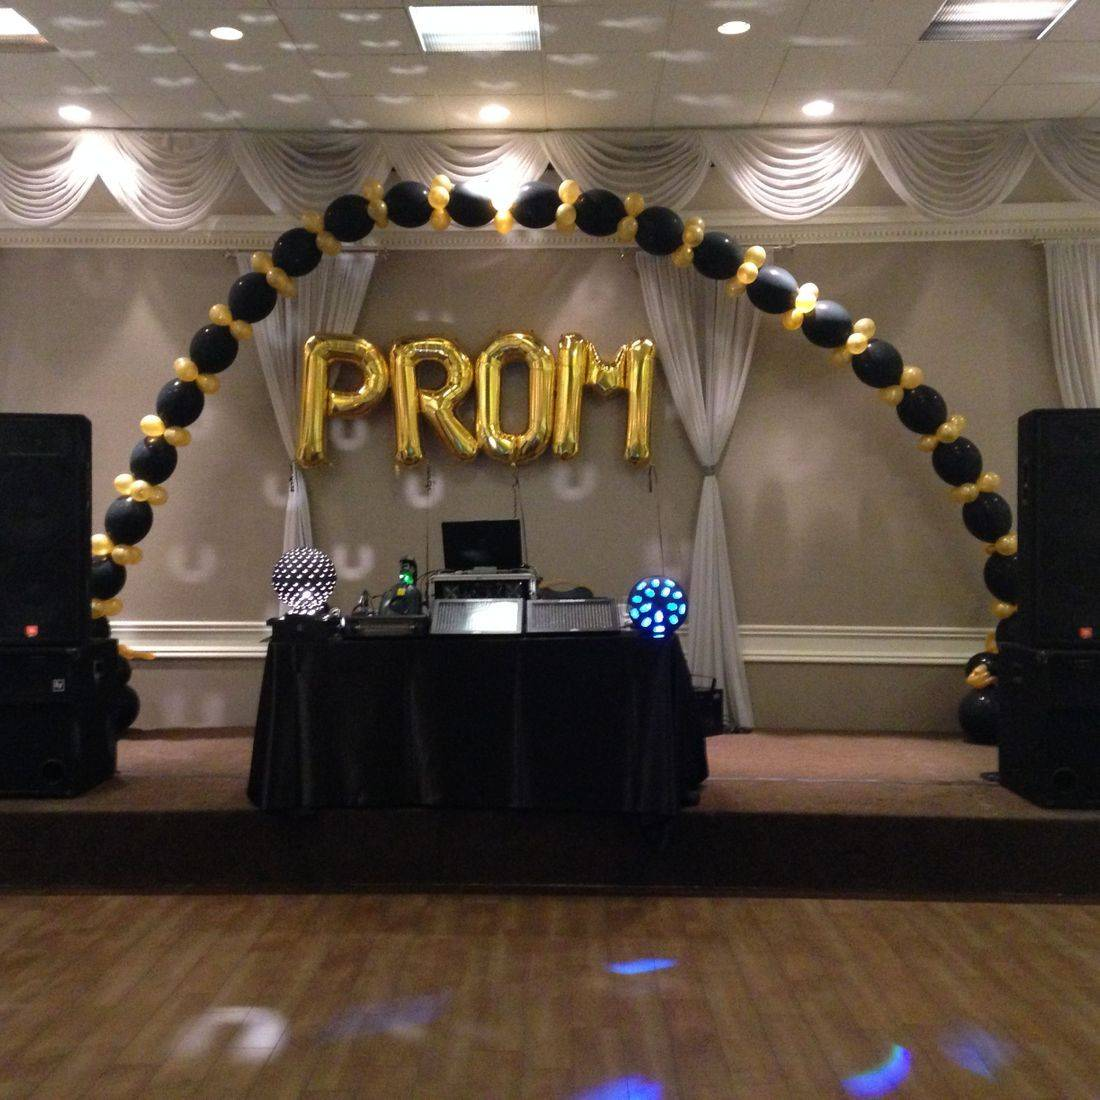 Mr. Productions DJ Service at a prom at Marquis Gardens in Hamilton